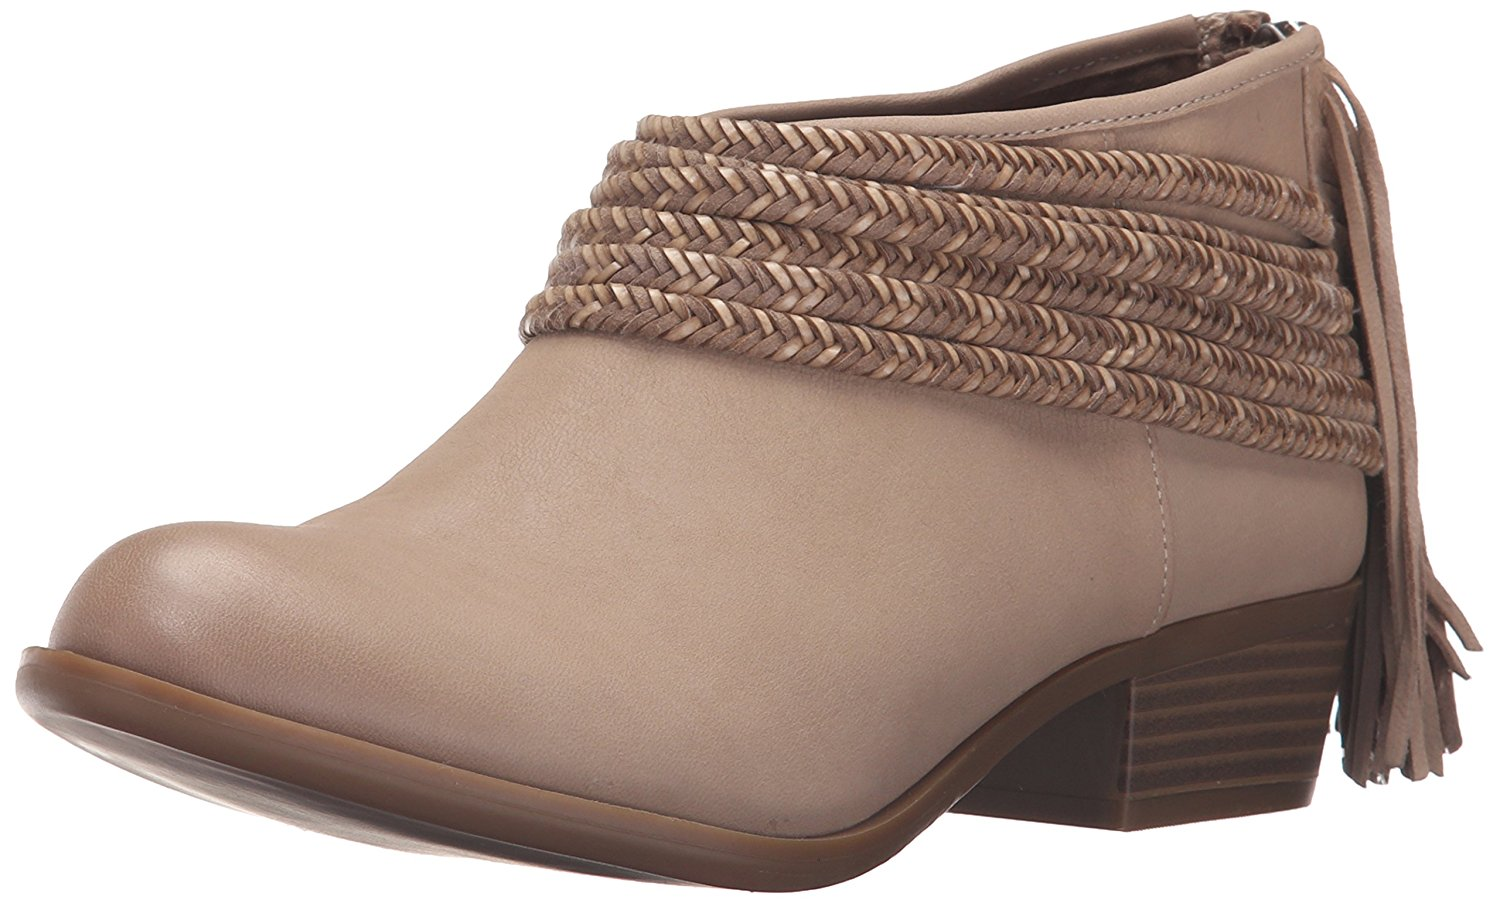 BCBGeneration Mujer Craftee Craftee Mujer Leather Round Toe Ankle Fashion Botas 3ff553